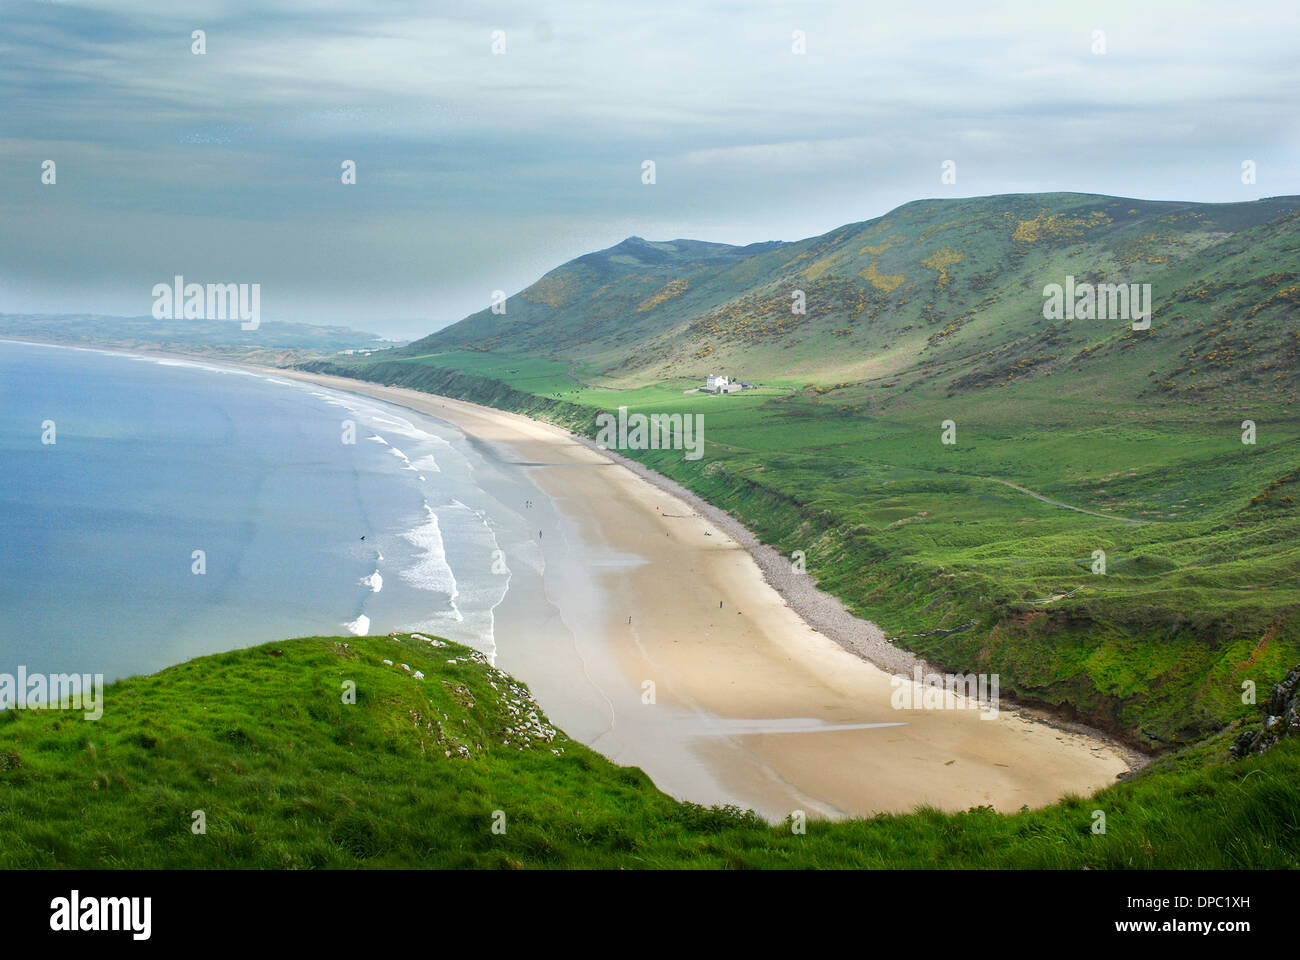 West Wales Coastline.  Beach in Wales. Rhossili Bay - Stock Image